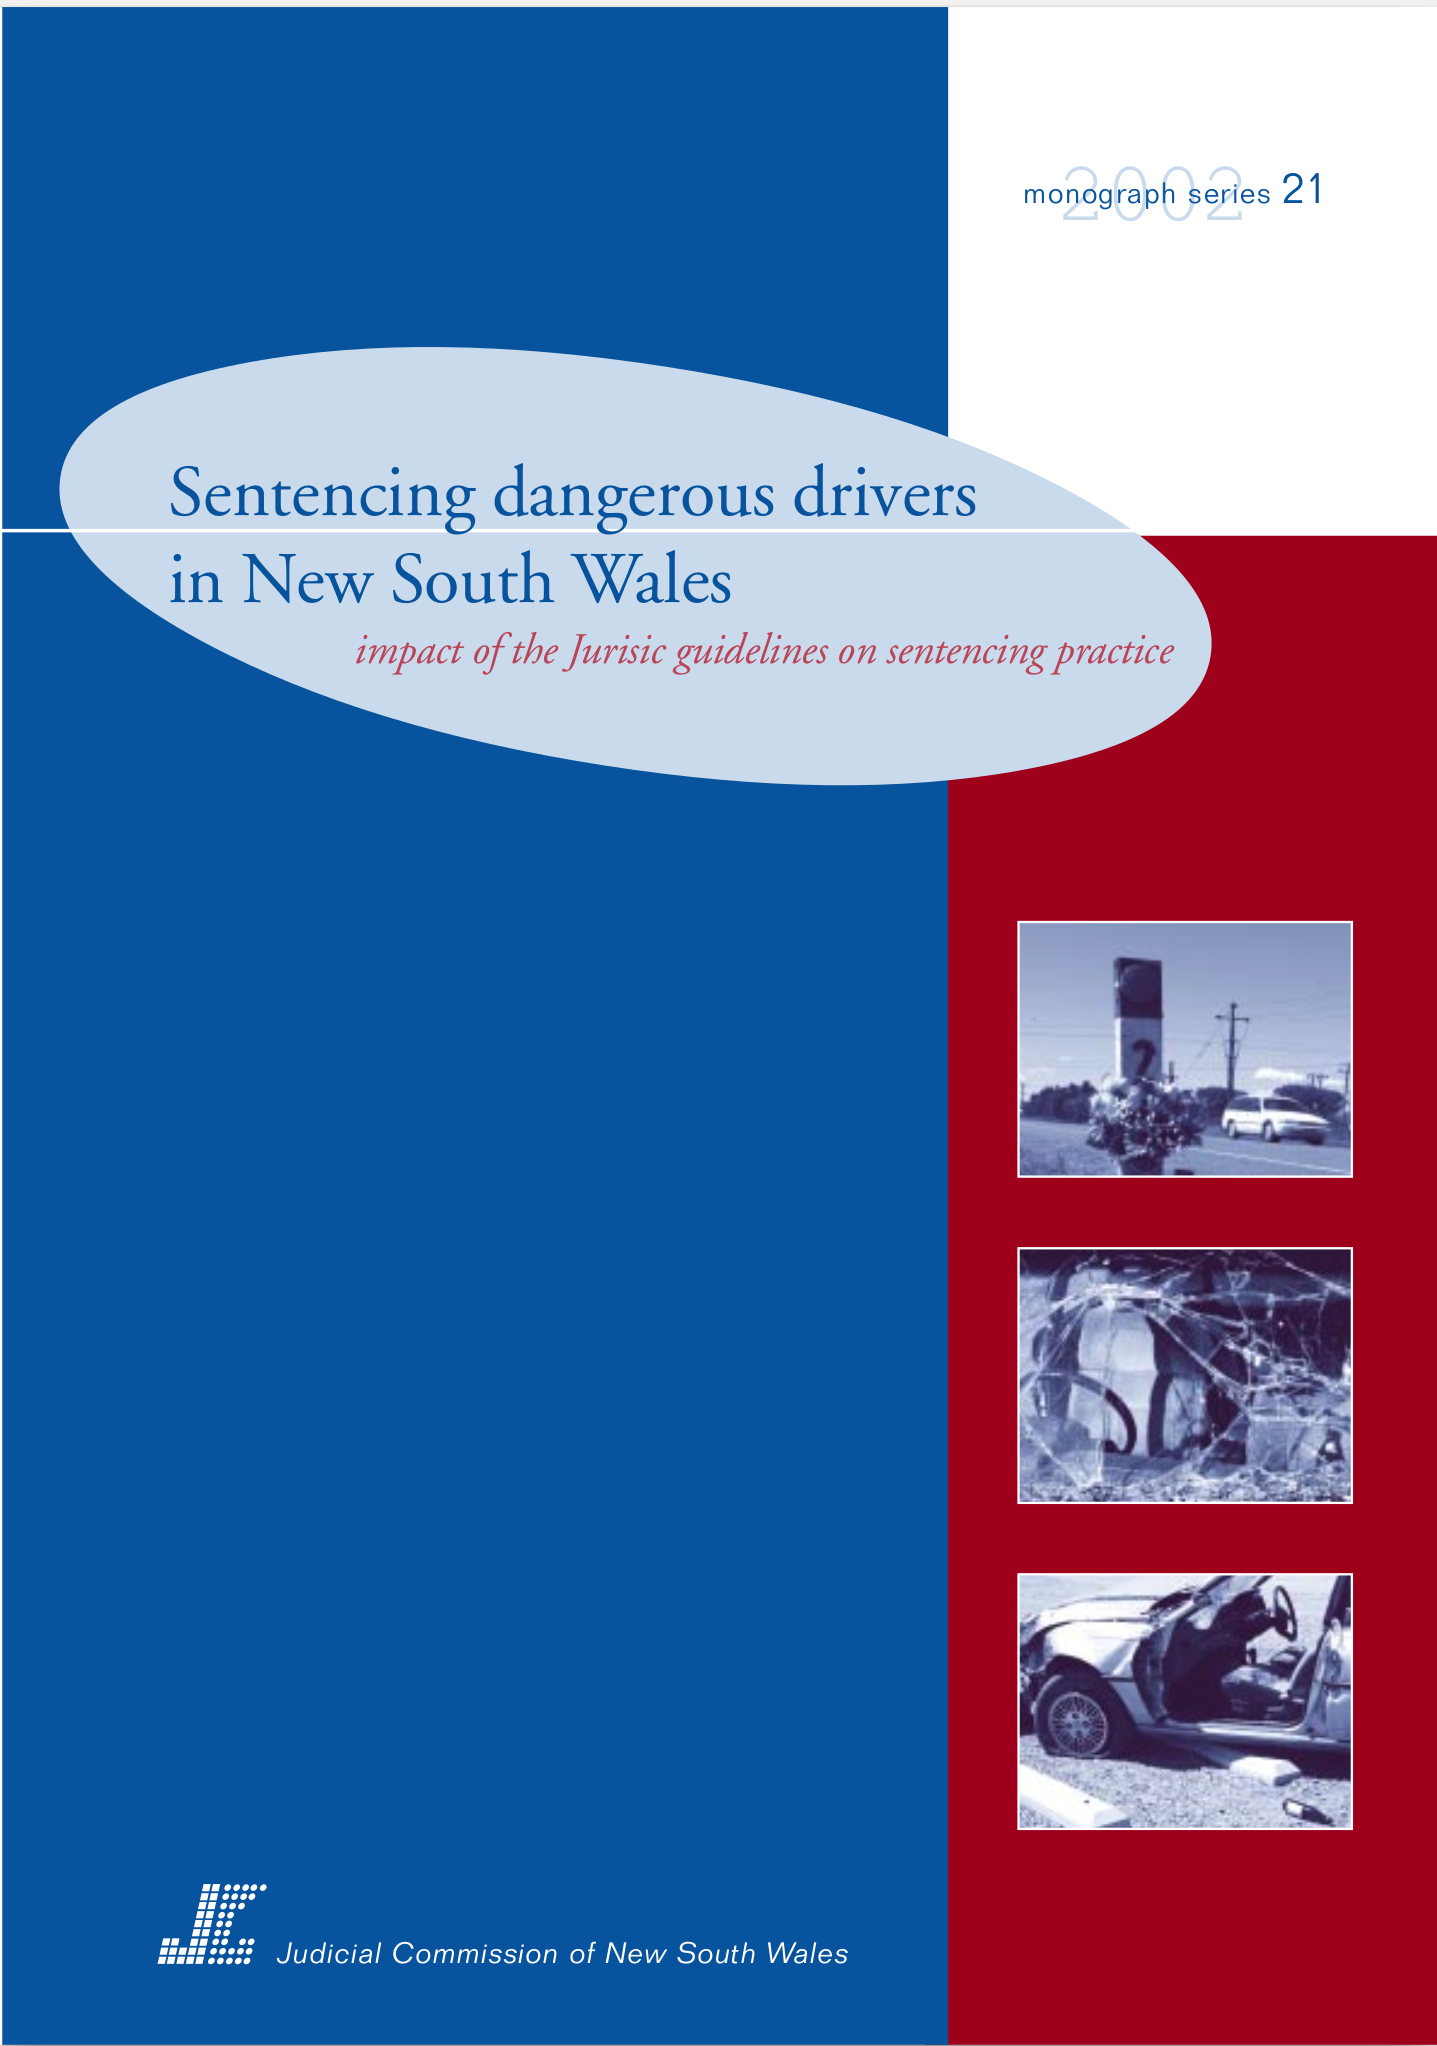 Research Monograph 21 Cover - Sentencing dangerous drivers in New South Wales: impact of the Jurisic guidelines on sentencing practice